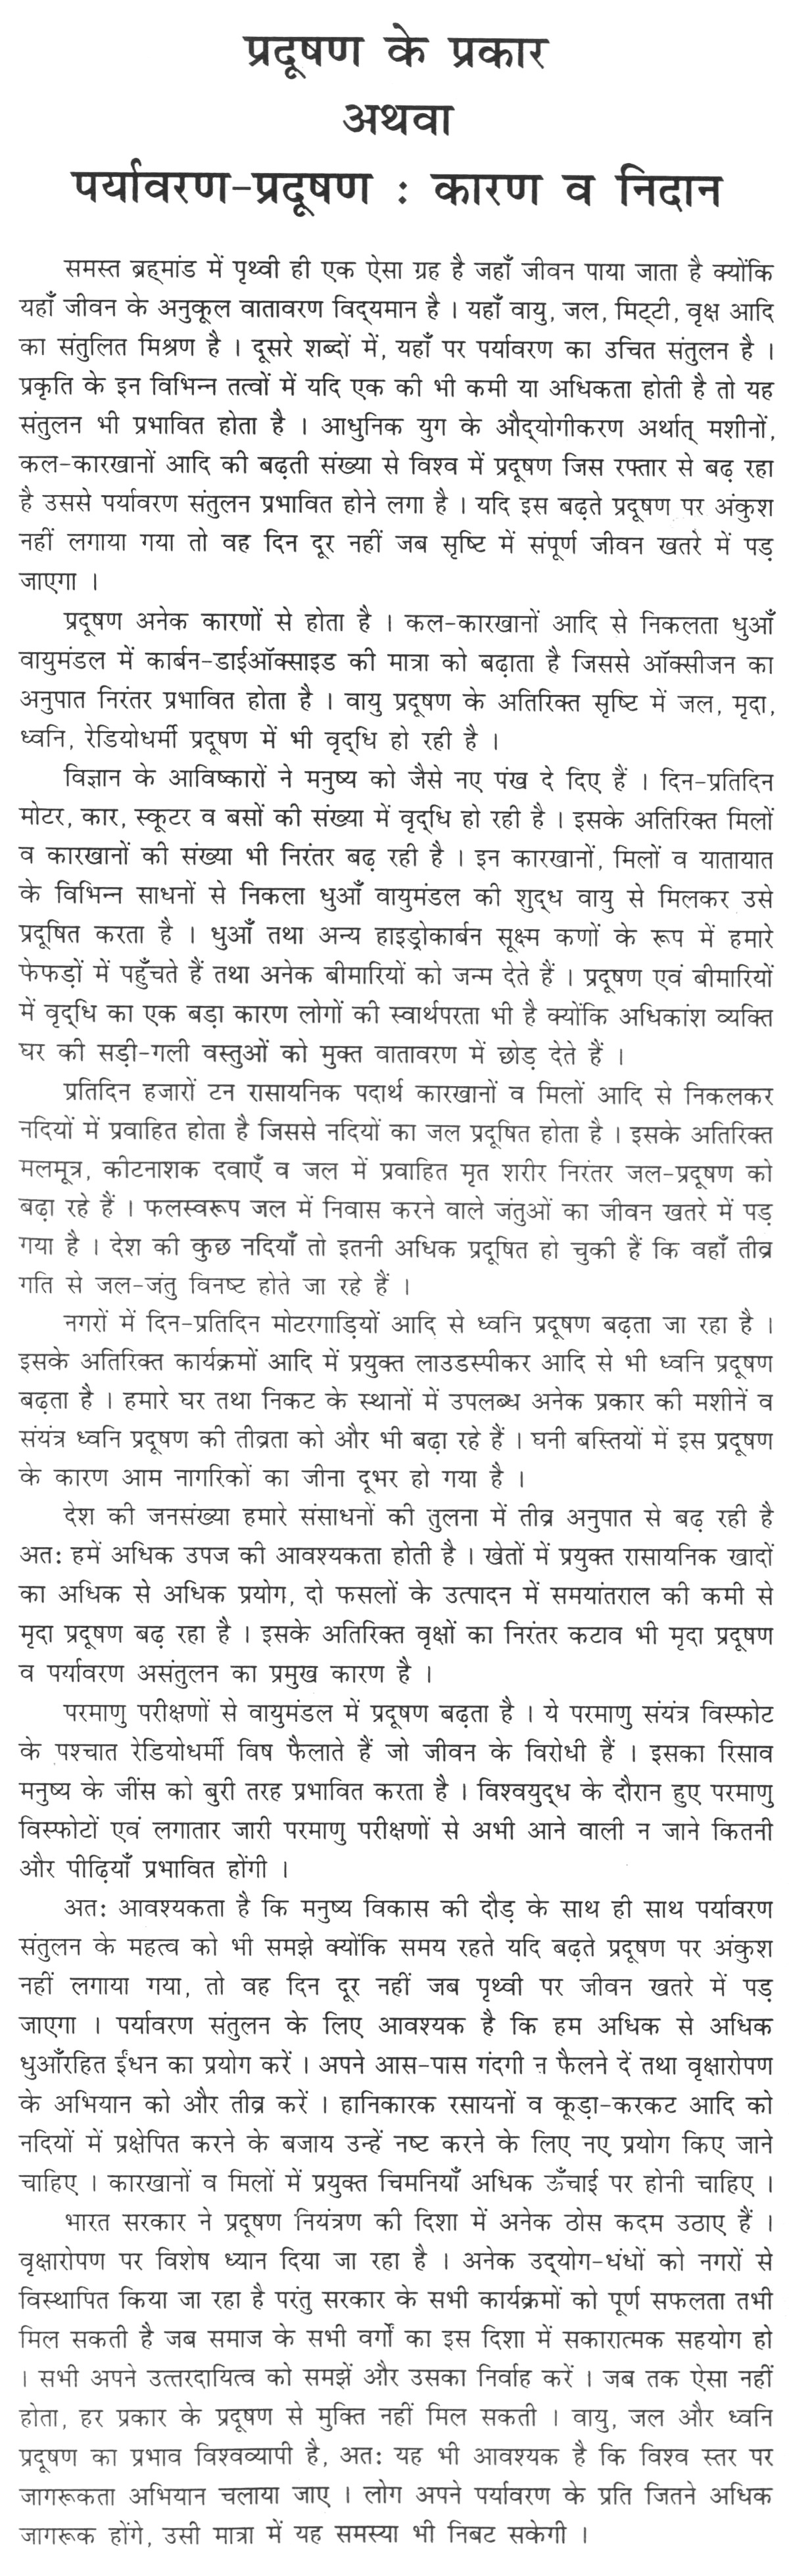 014 Good Habits Essay In Hindi Exceptional Reading Habit Wikipedia Full